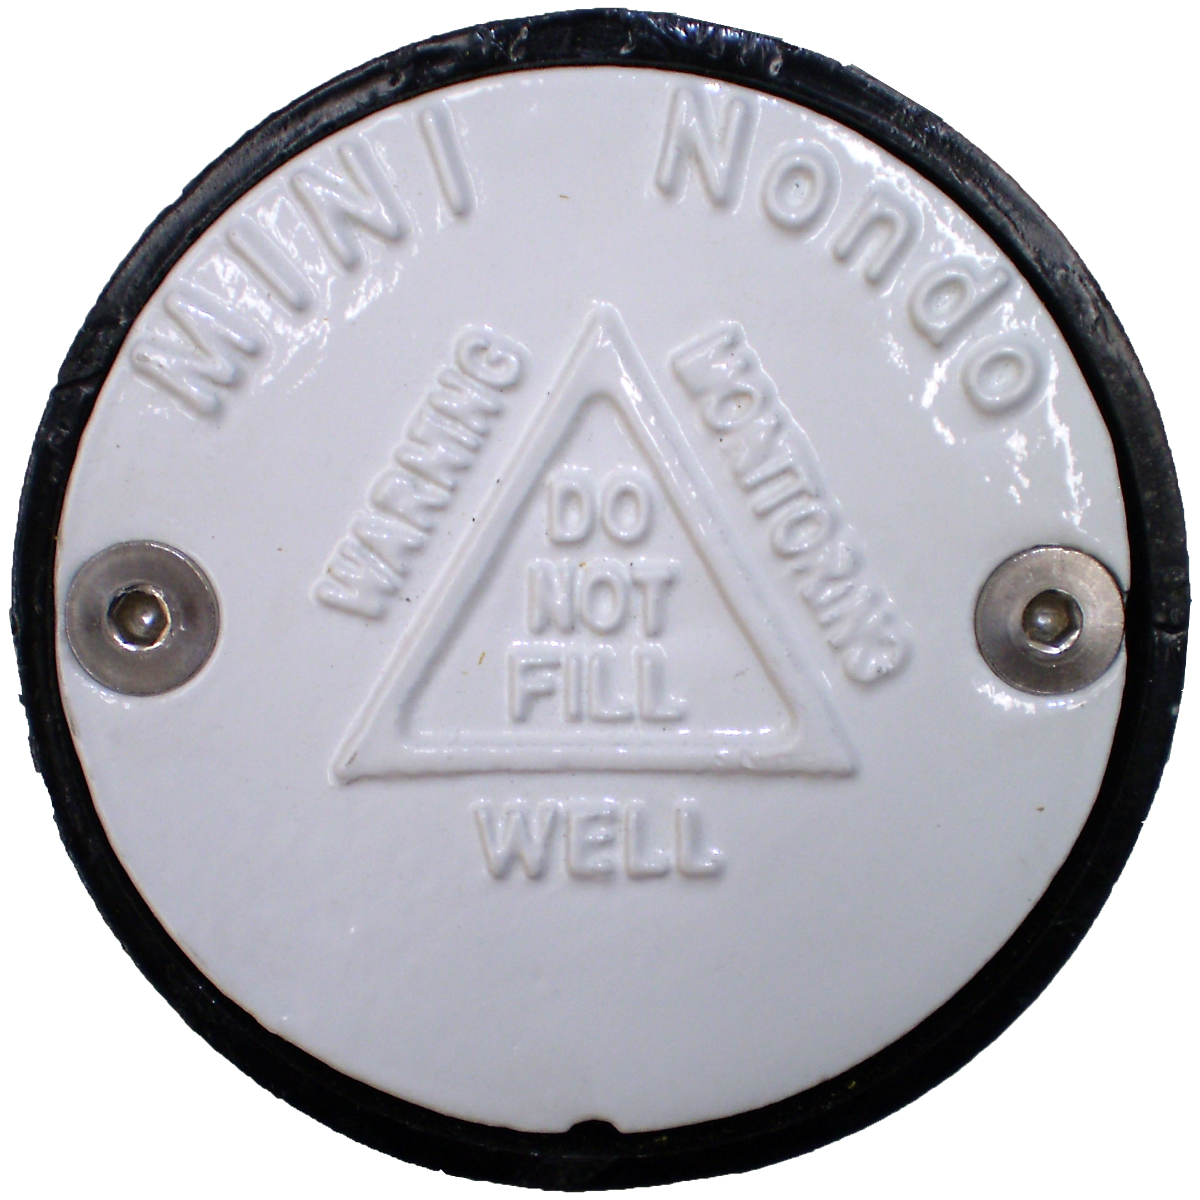 Mini Nondo 150 Flush Mounted Well Cover For Monitoring Wells and